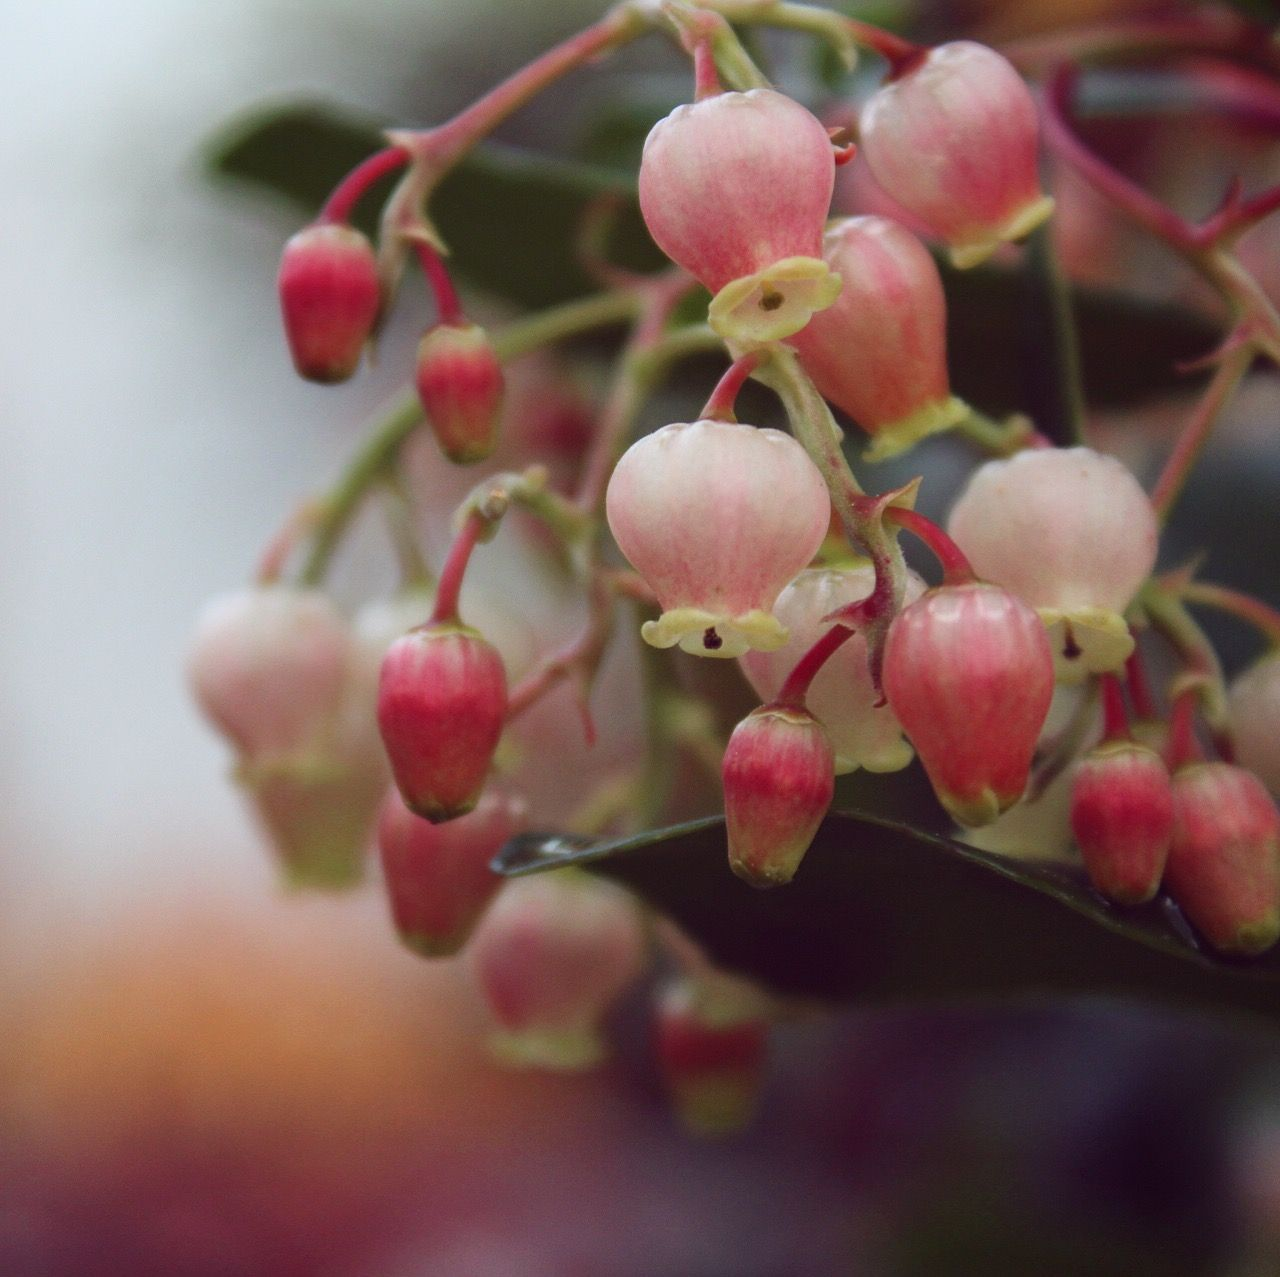 The Beautiful Bell Shaped Flowers Of Arbutus Unedo Rubra As Seen At